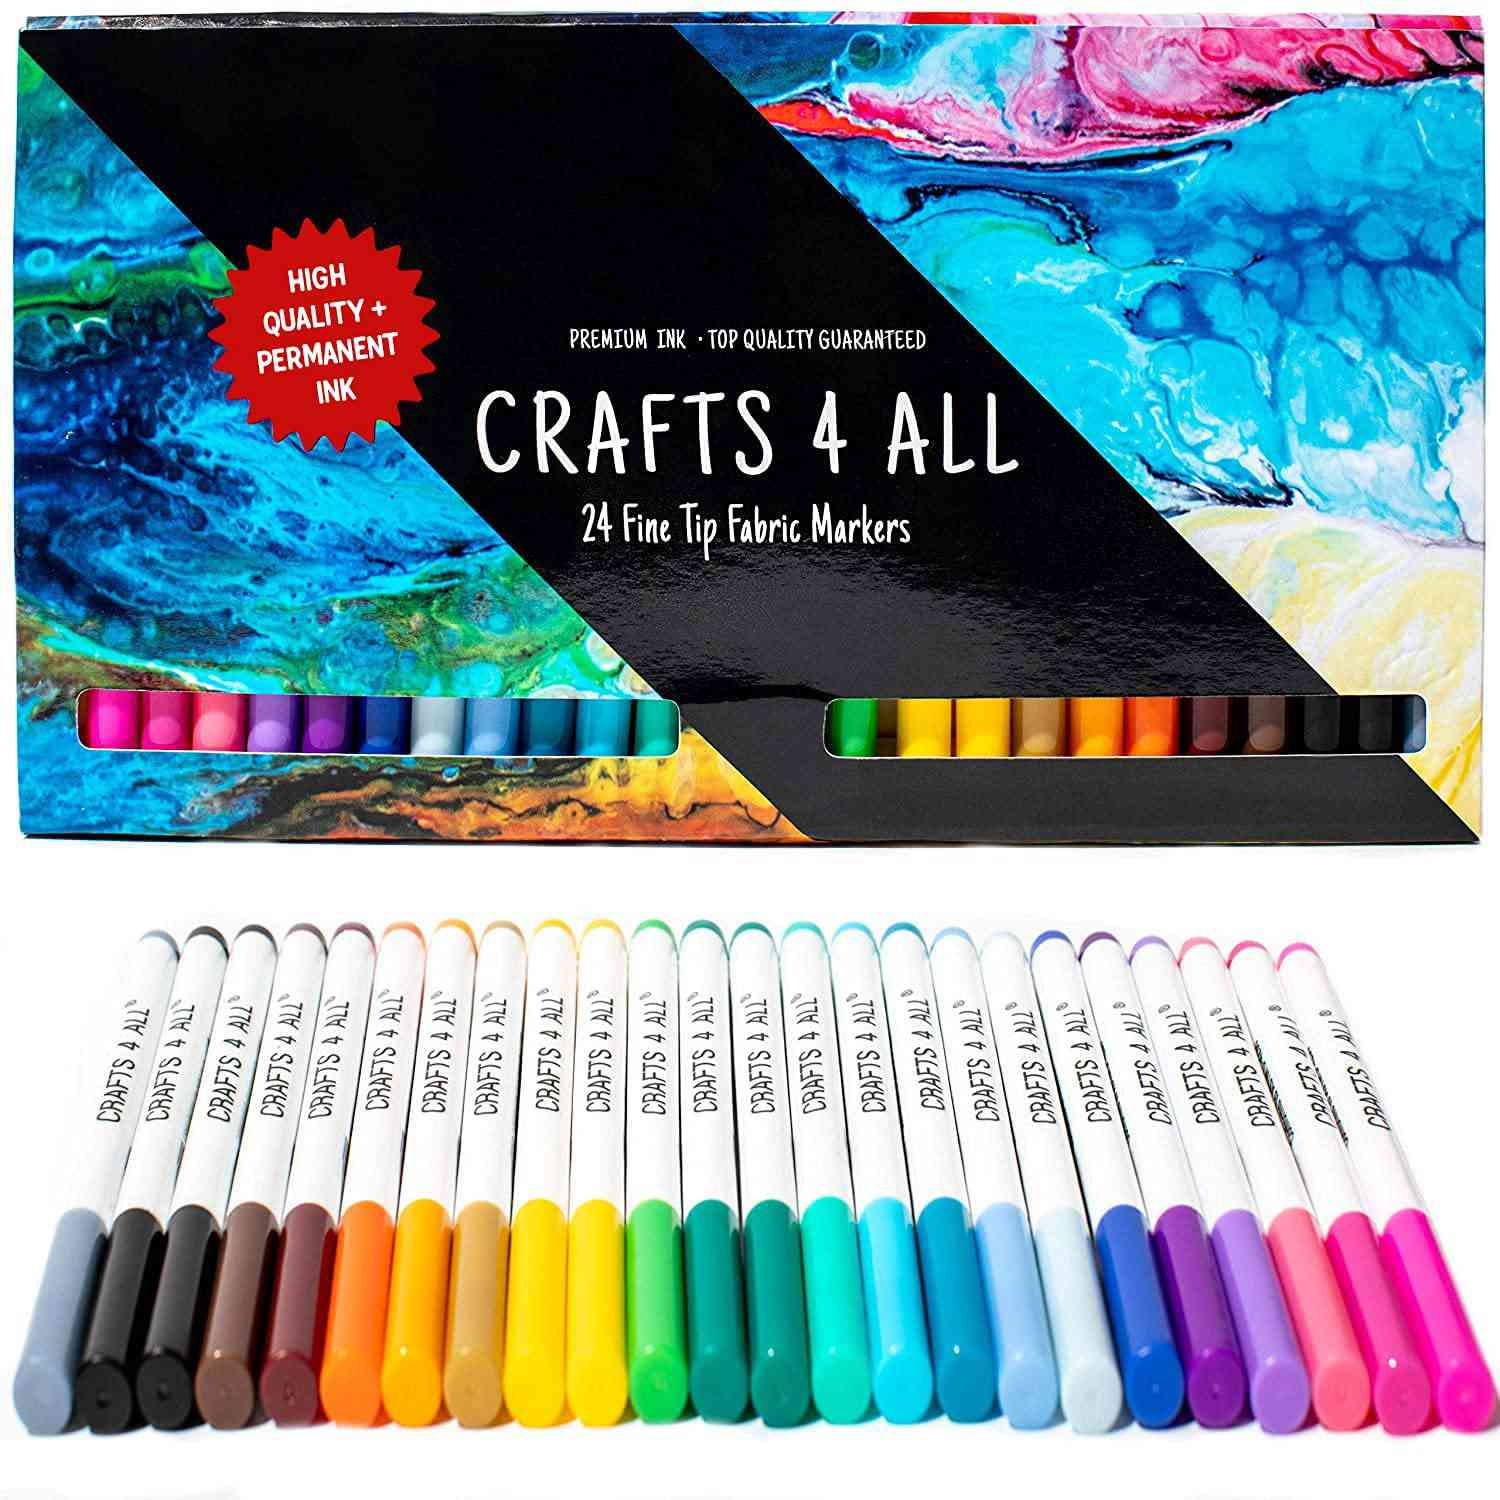 Crafts 4 All Fine Tip Fabric Markers